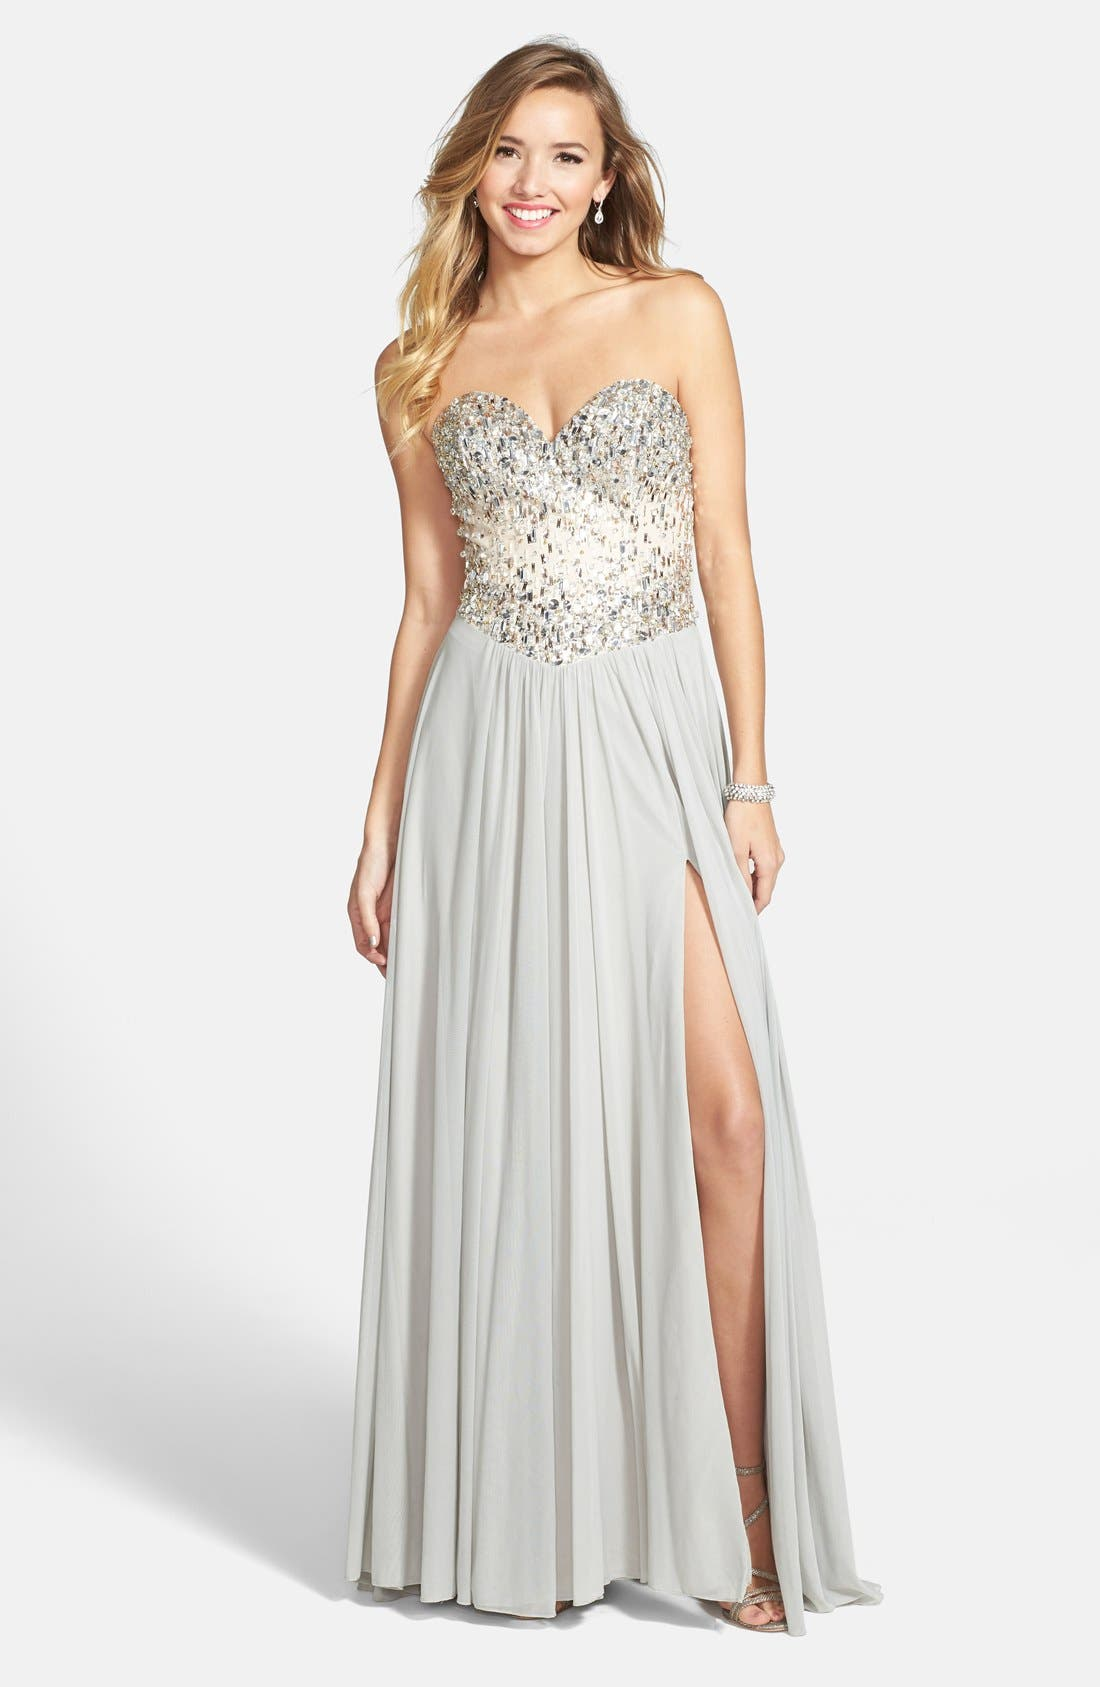 Alternate Image 1 Selected - Terani Couture Embellished Strapless Chiffon Gown